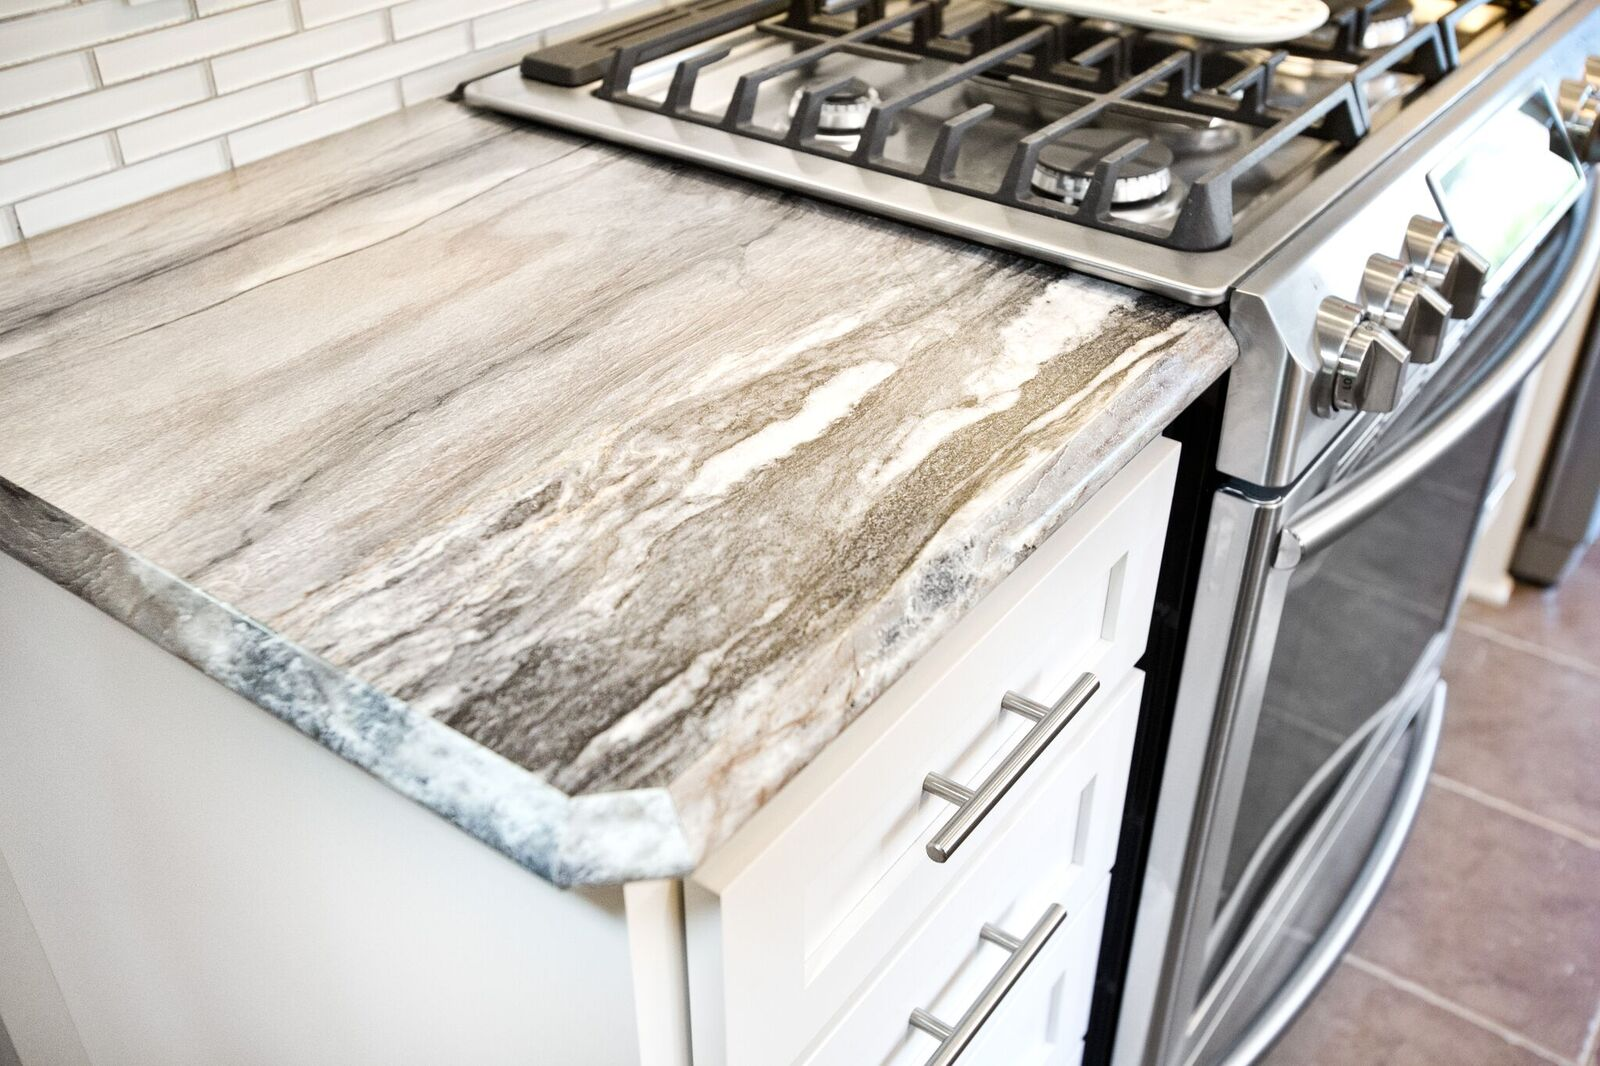 Travertine? Quartz? Nope! Formica Laminte counters. Fooled you too, huh? :)